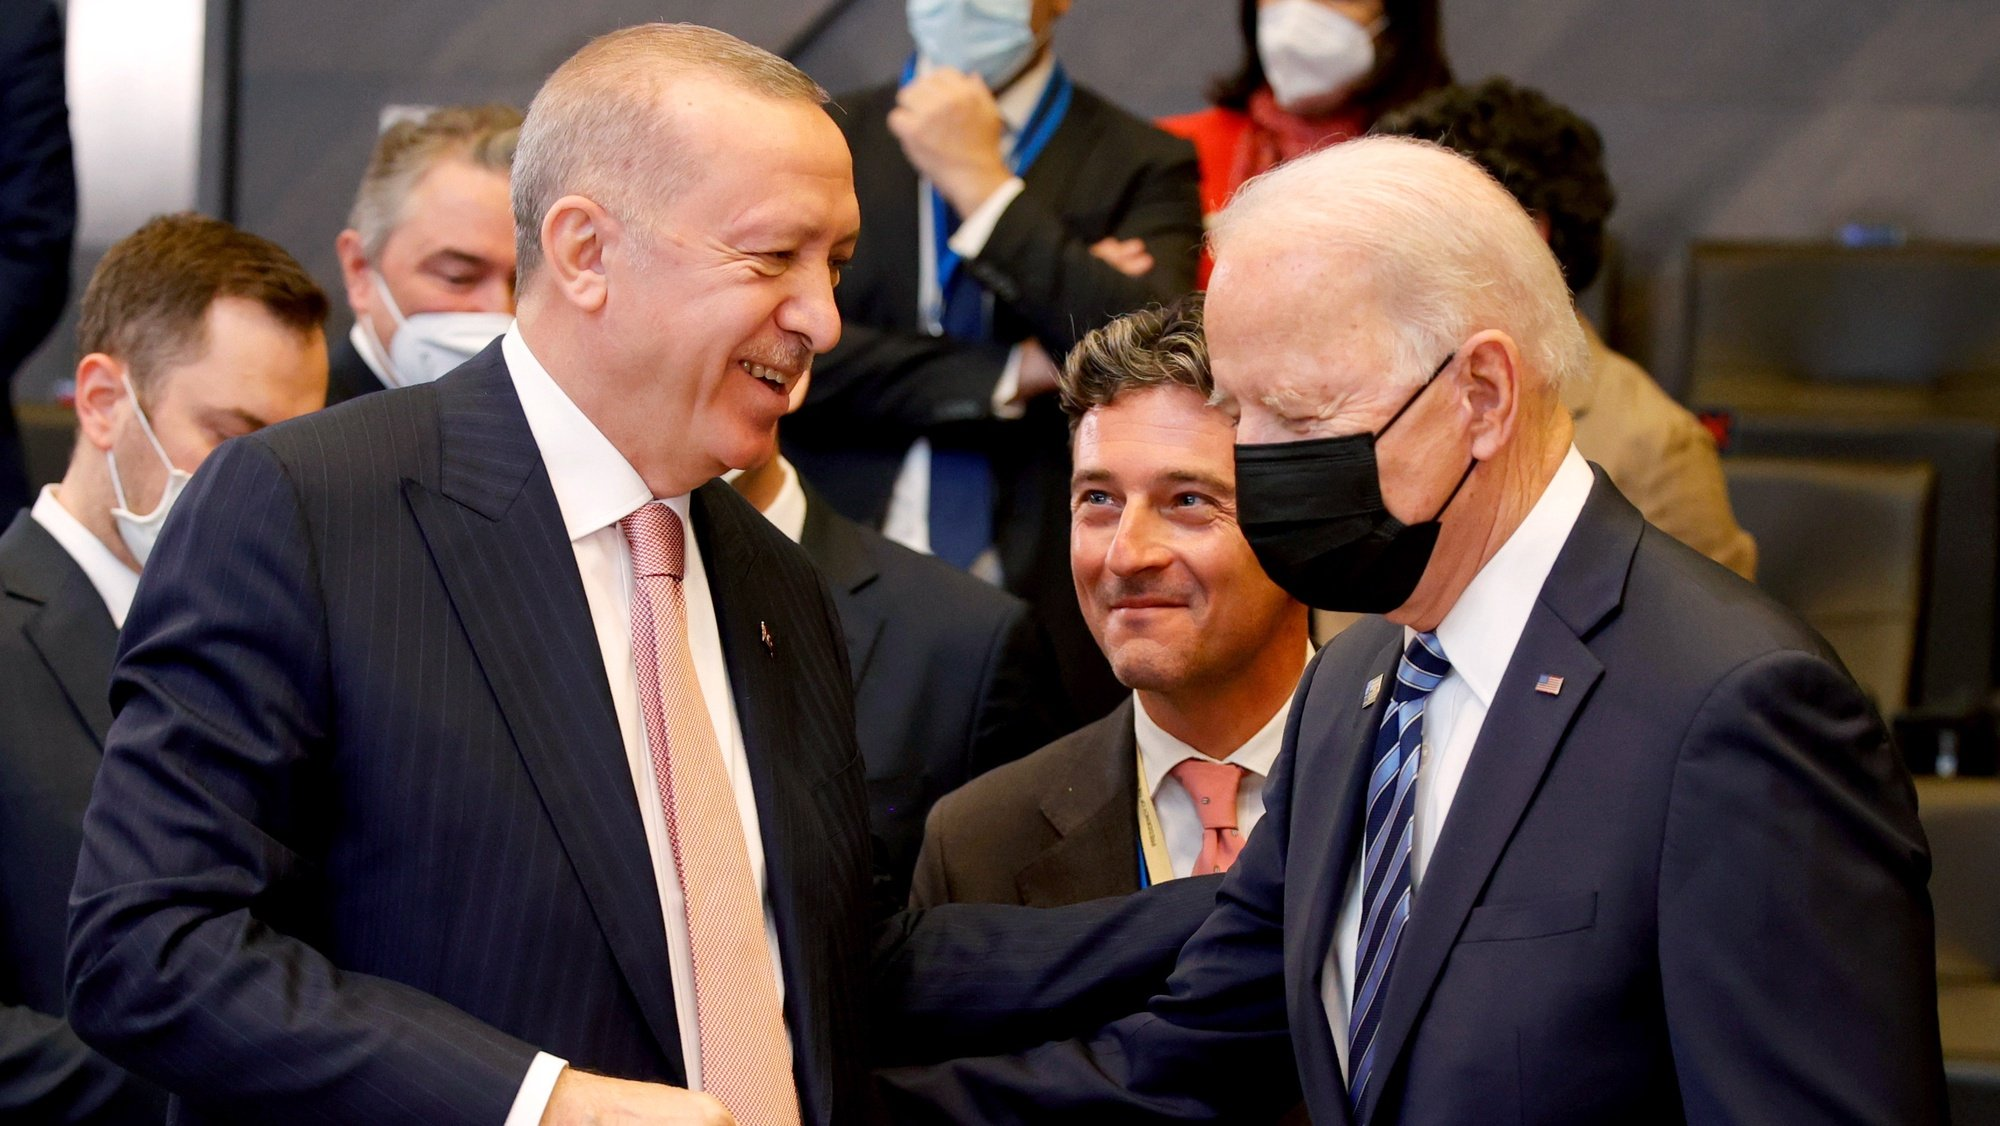 epa09270208 US President Joe Biden (R) speaks with Turkey's President Recep Tayyip Erdogan (L) during a plenary session at a NATO summit in Brussels, Belgium, 14 June 2021. The 30-nation alliance hopes to reaffirm its unity and discuss increasingly tense relations with China and Russia, as the organization pulls its troops out after 18 years in Afghanistan.  EPA/OLIVIER MATTHYS / POOL